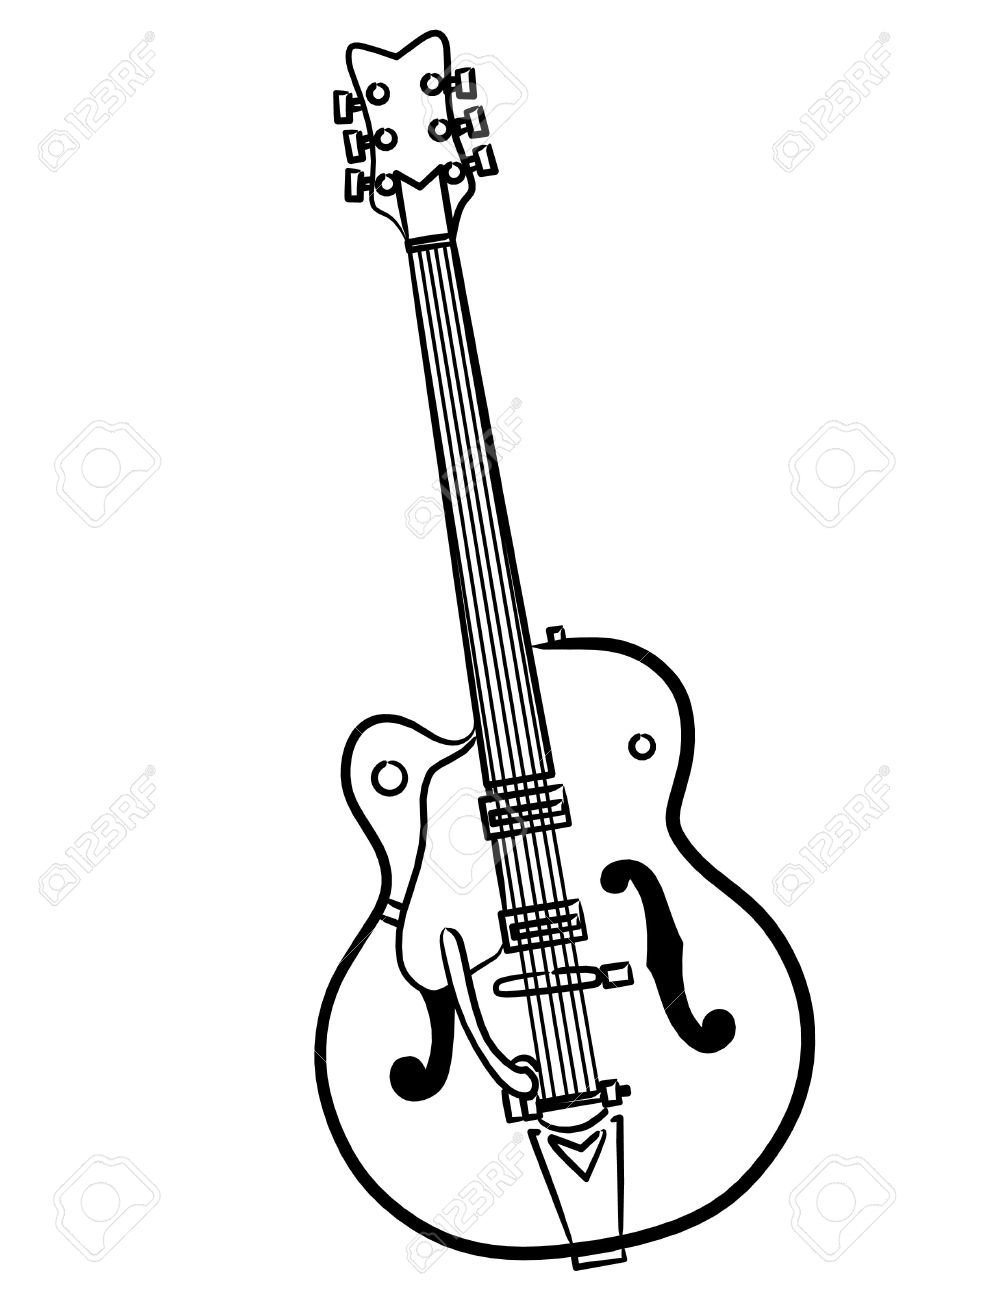 bass guitar drawing at getdrawings com free for personal use bass rh getdrawings com  clipart bass guitar